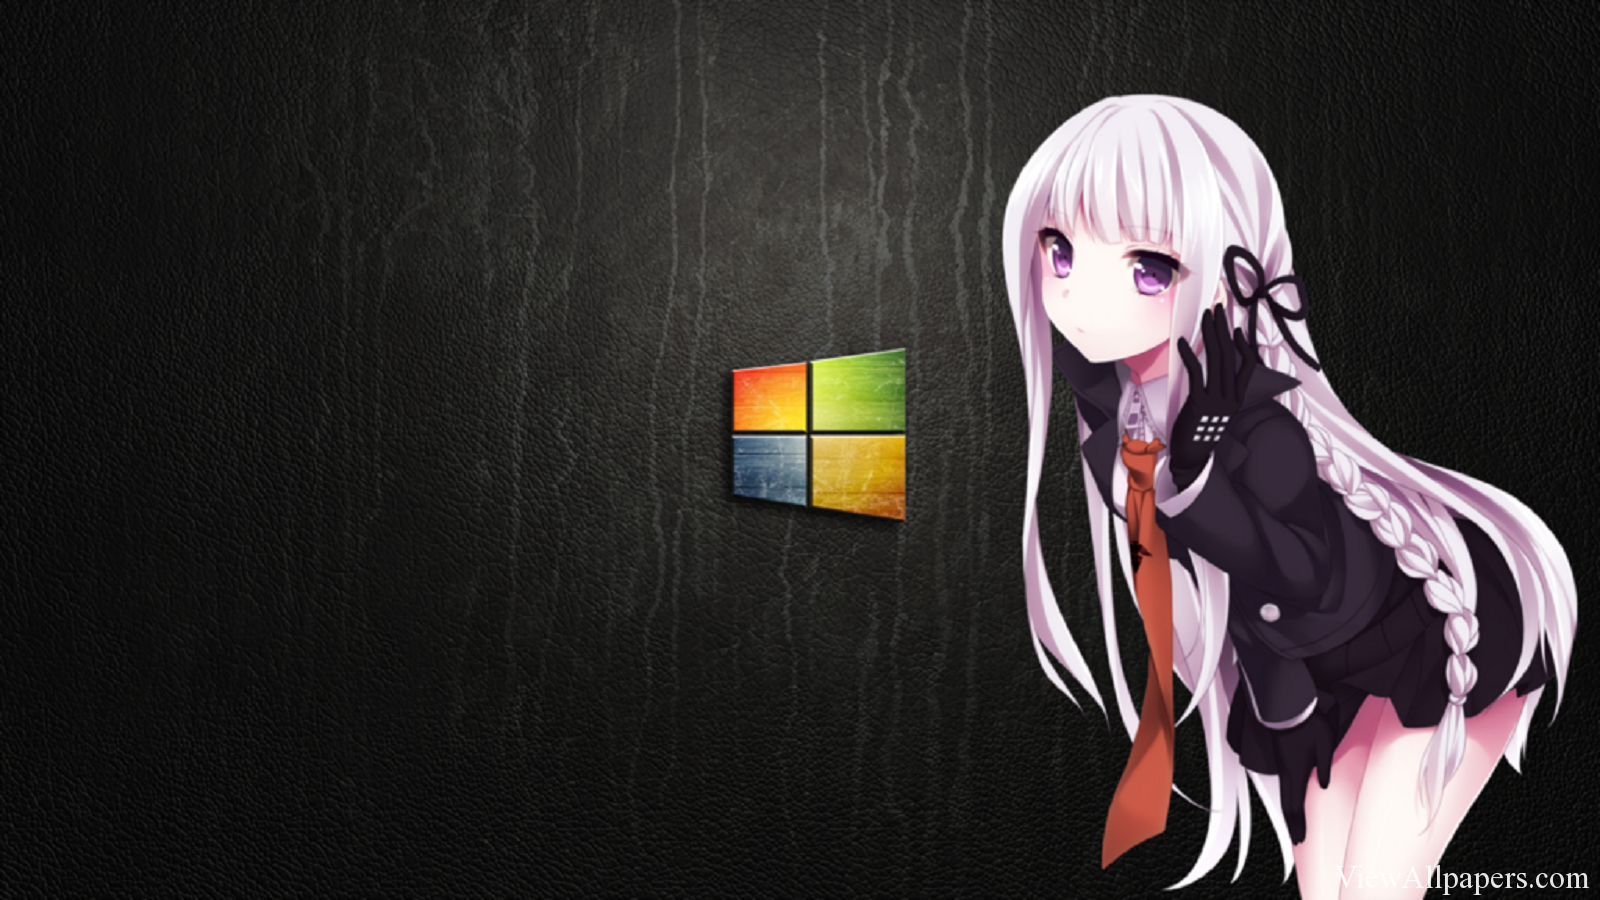 Anime Wallpapers for PC 1600x900